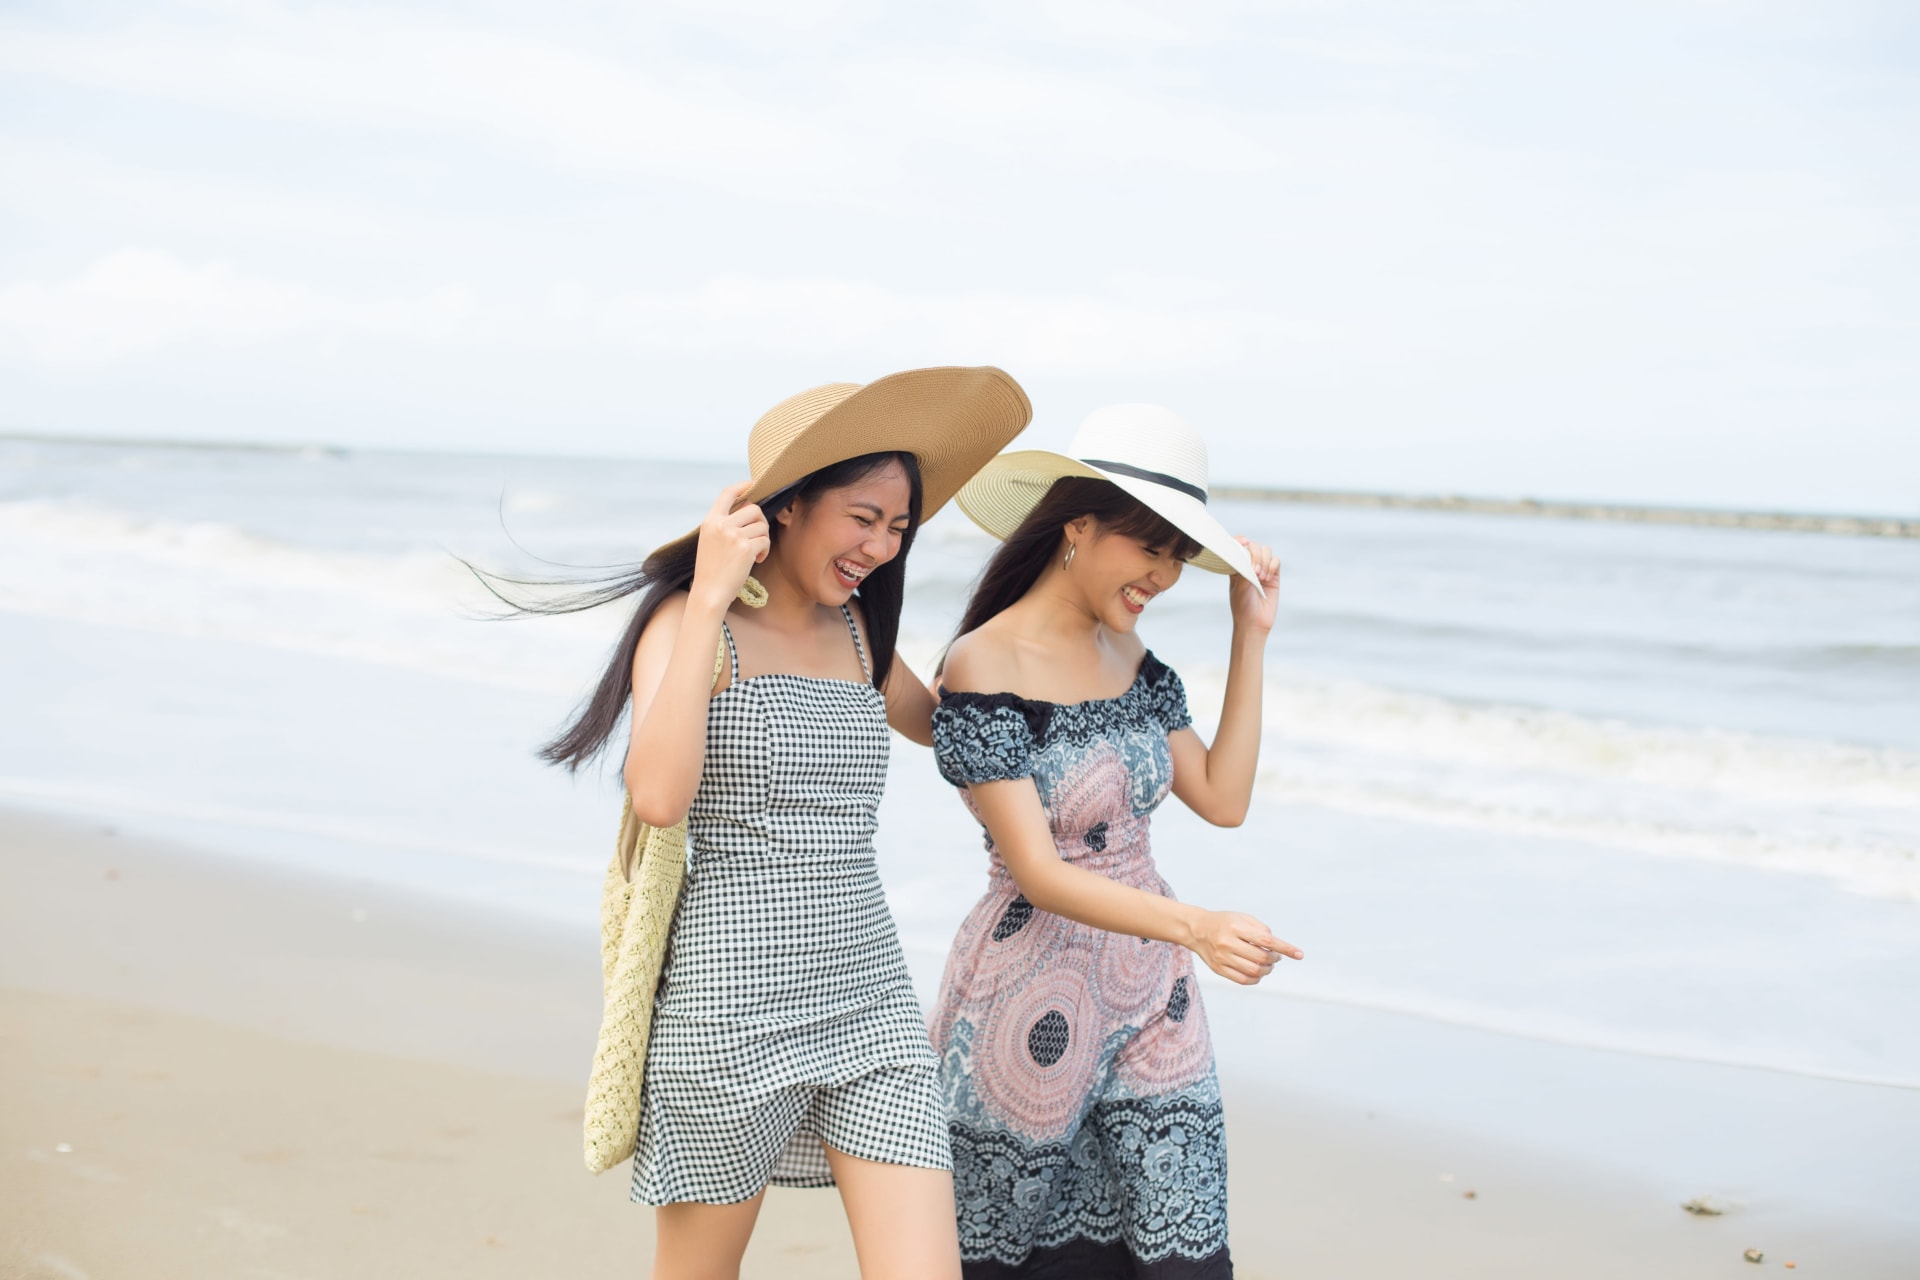 Two women laughing while holding their hats and walking on the beach